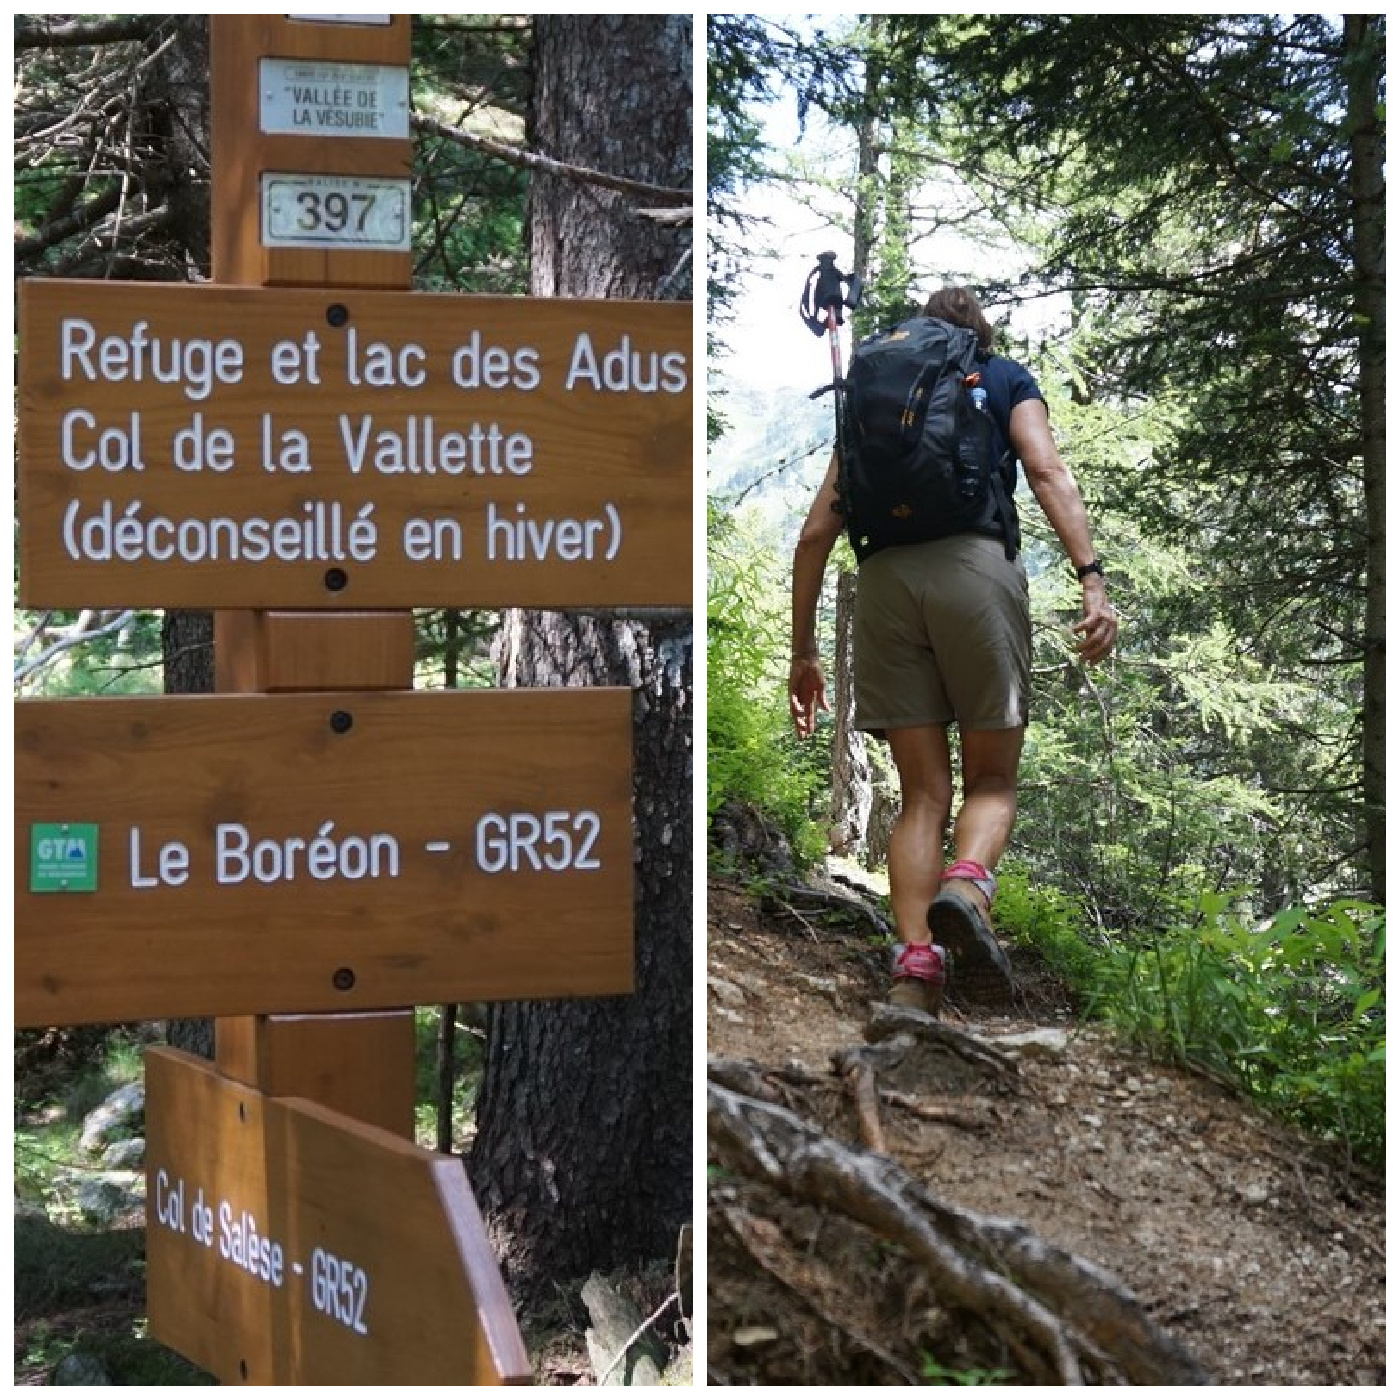 Signpost#397 and trail start